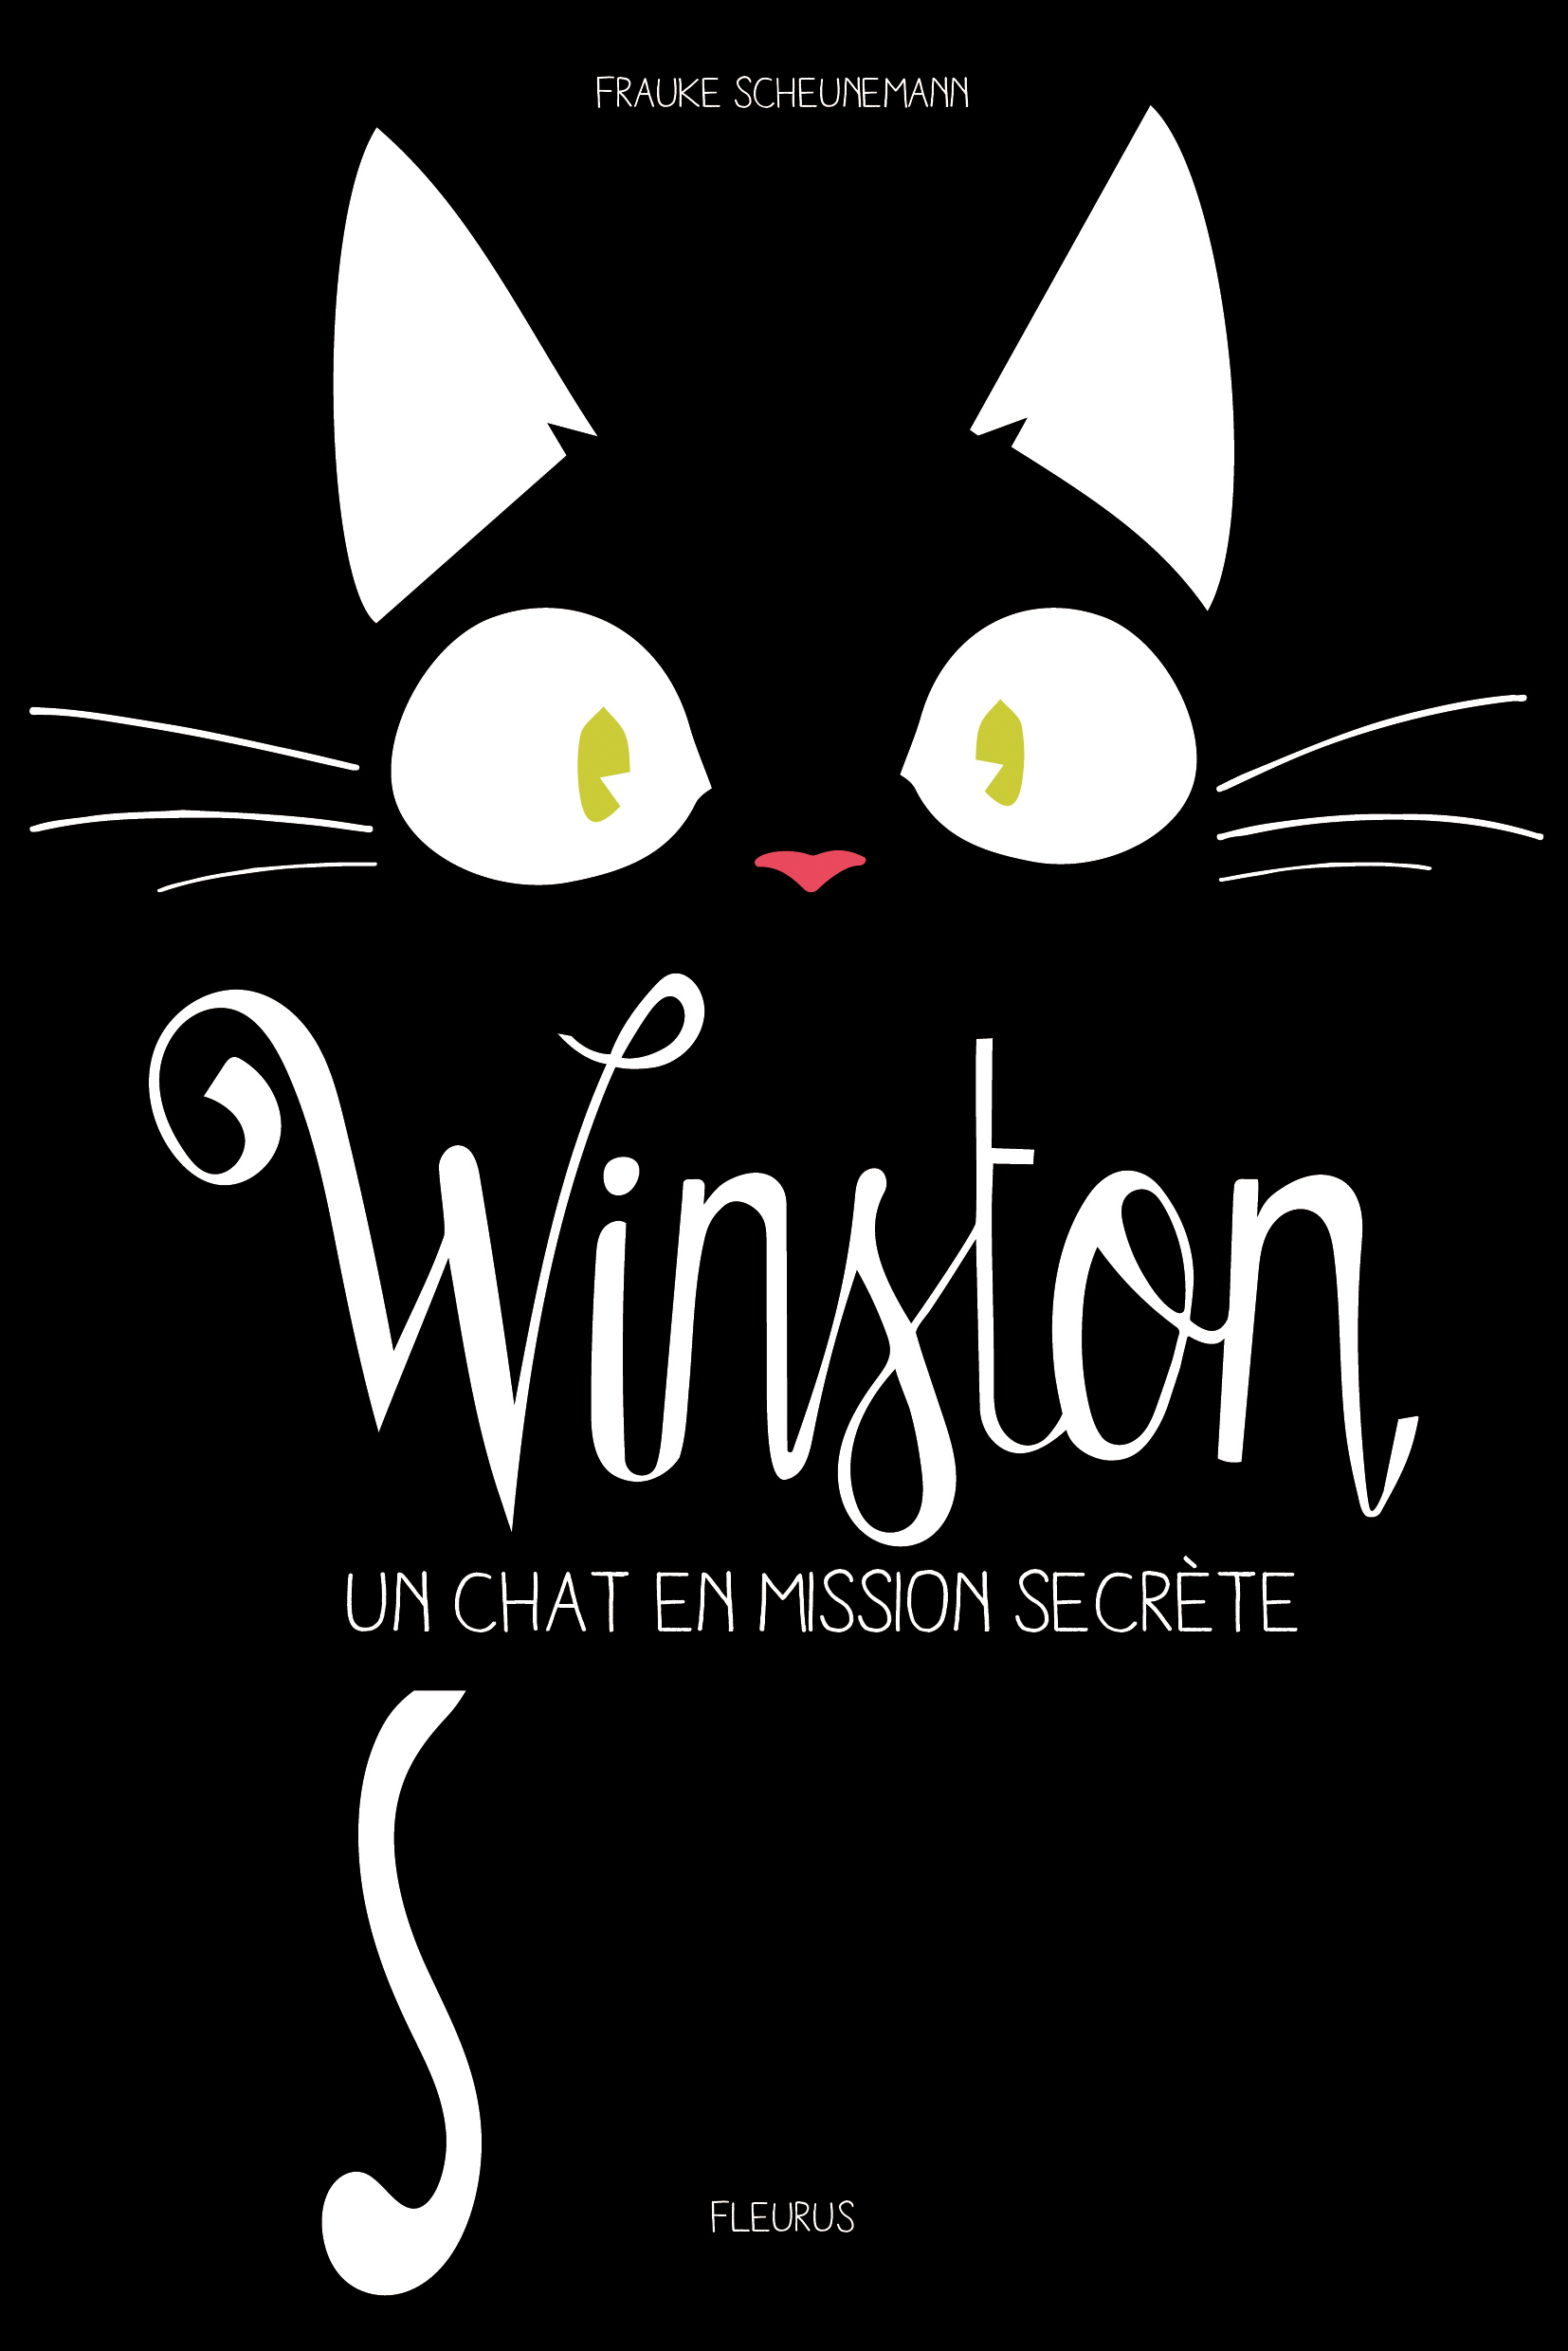 WINSTON, UN CHAT EN MISSION SECRETE